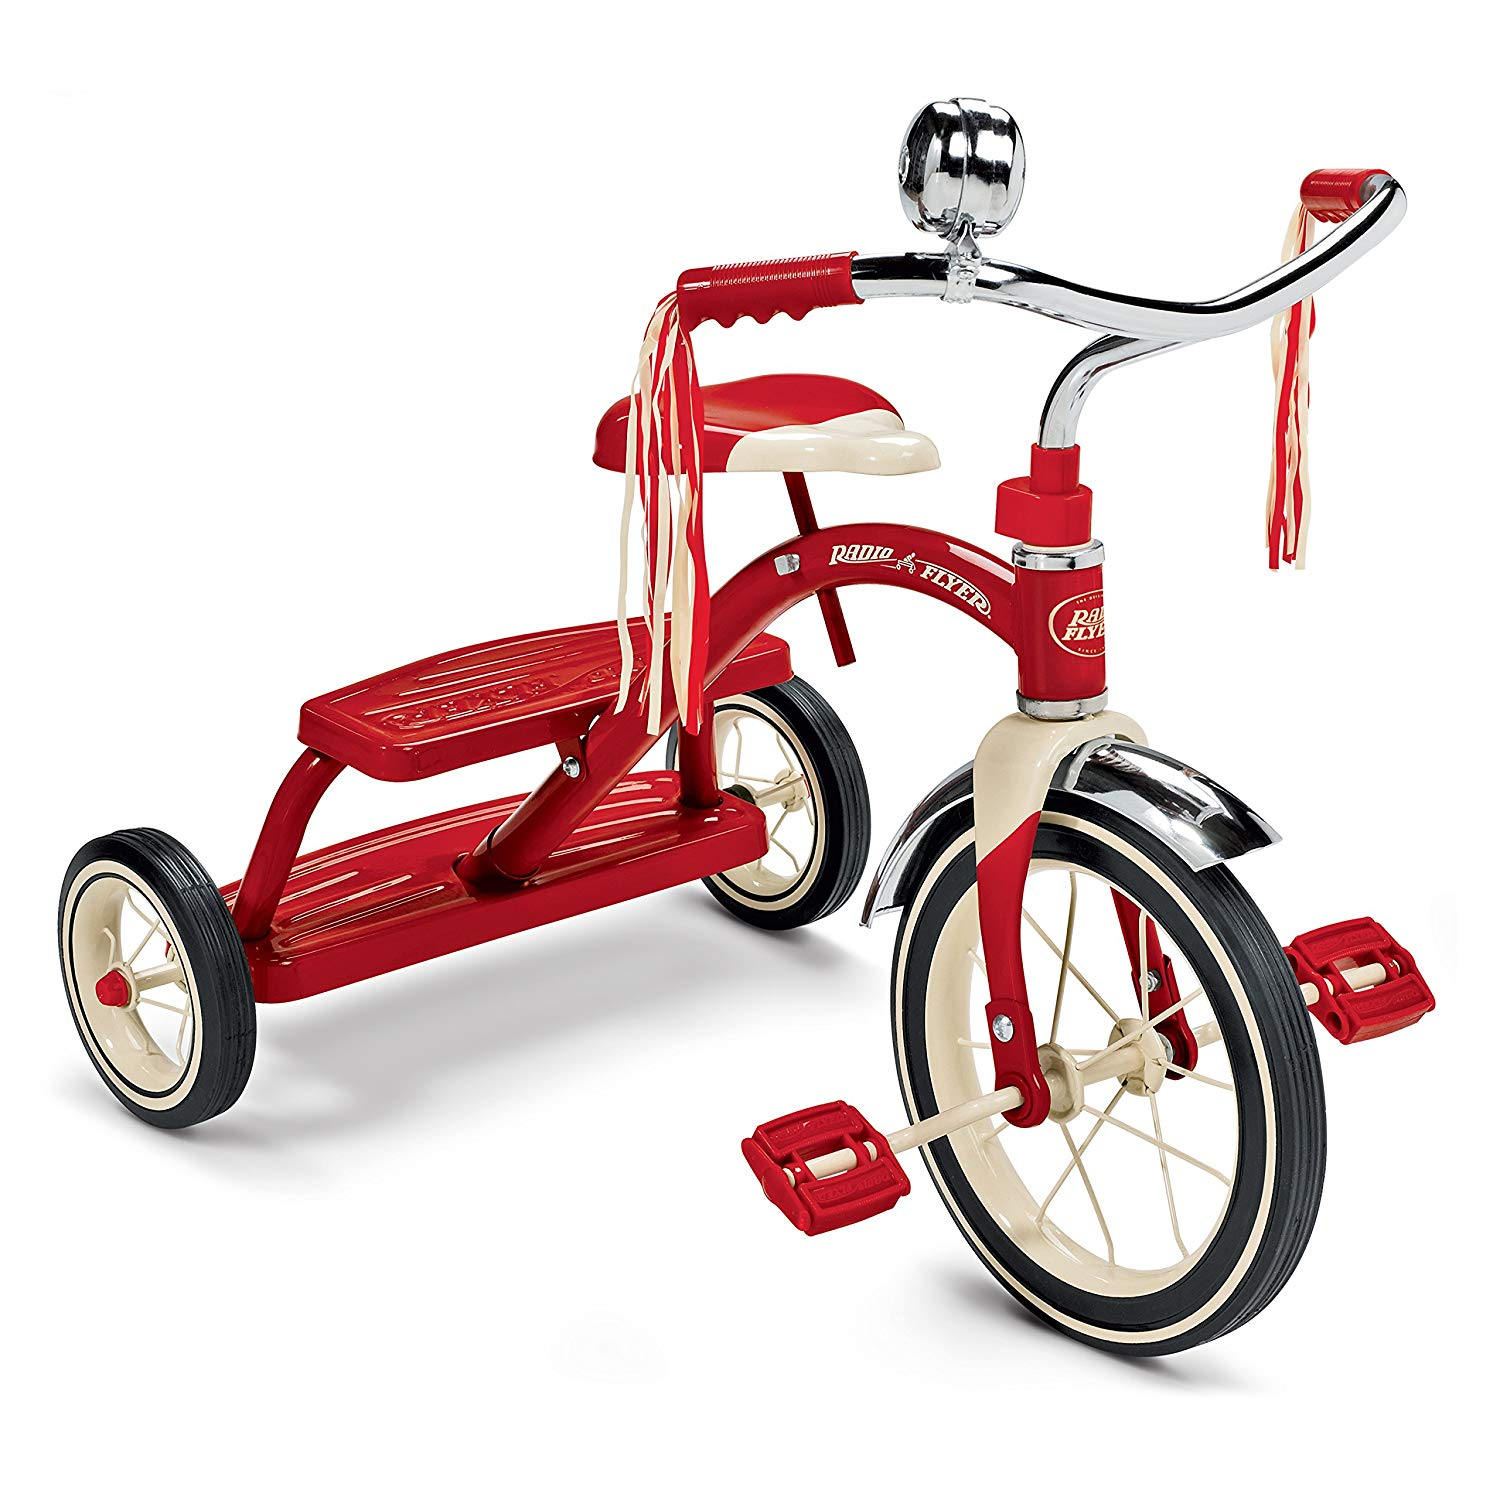 The Classic Radio Flyer Trike